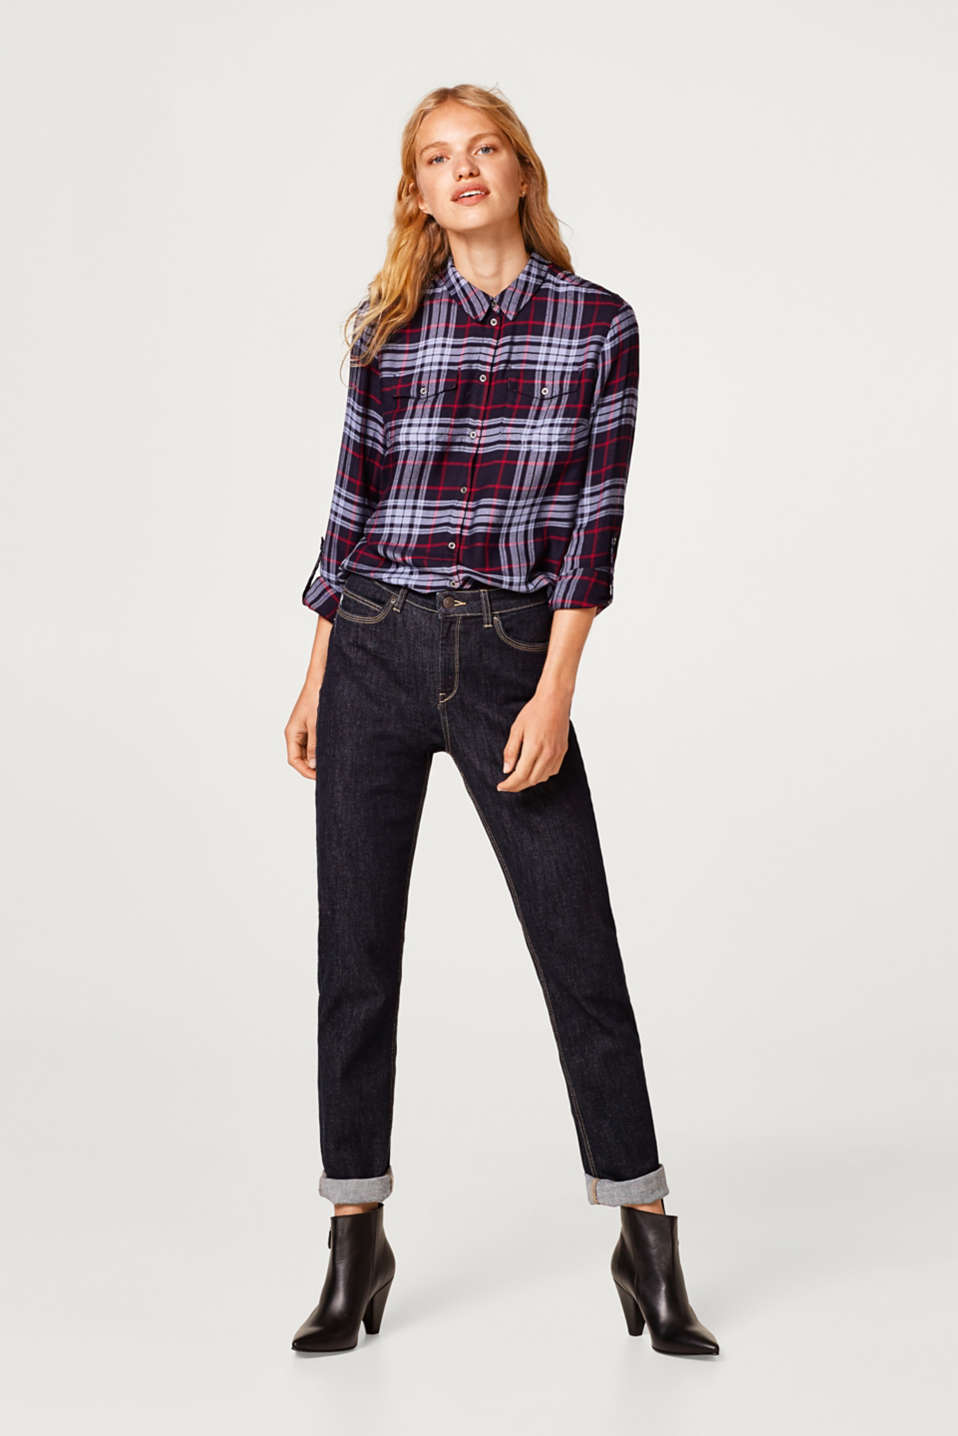 Esprit - Check blouse with studs and turn-up sleeves